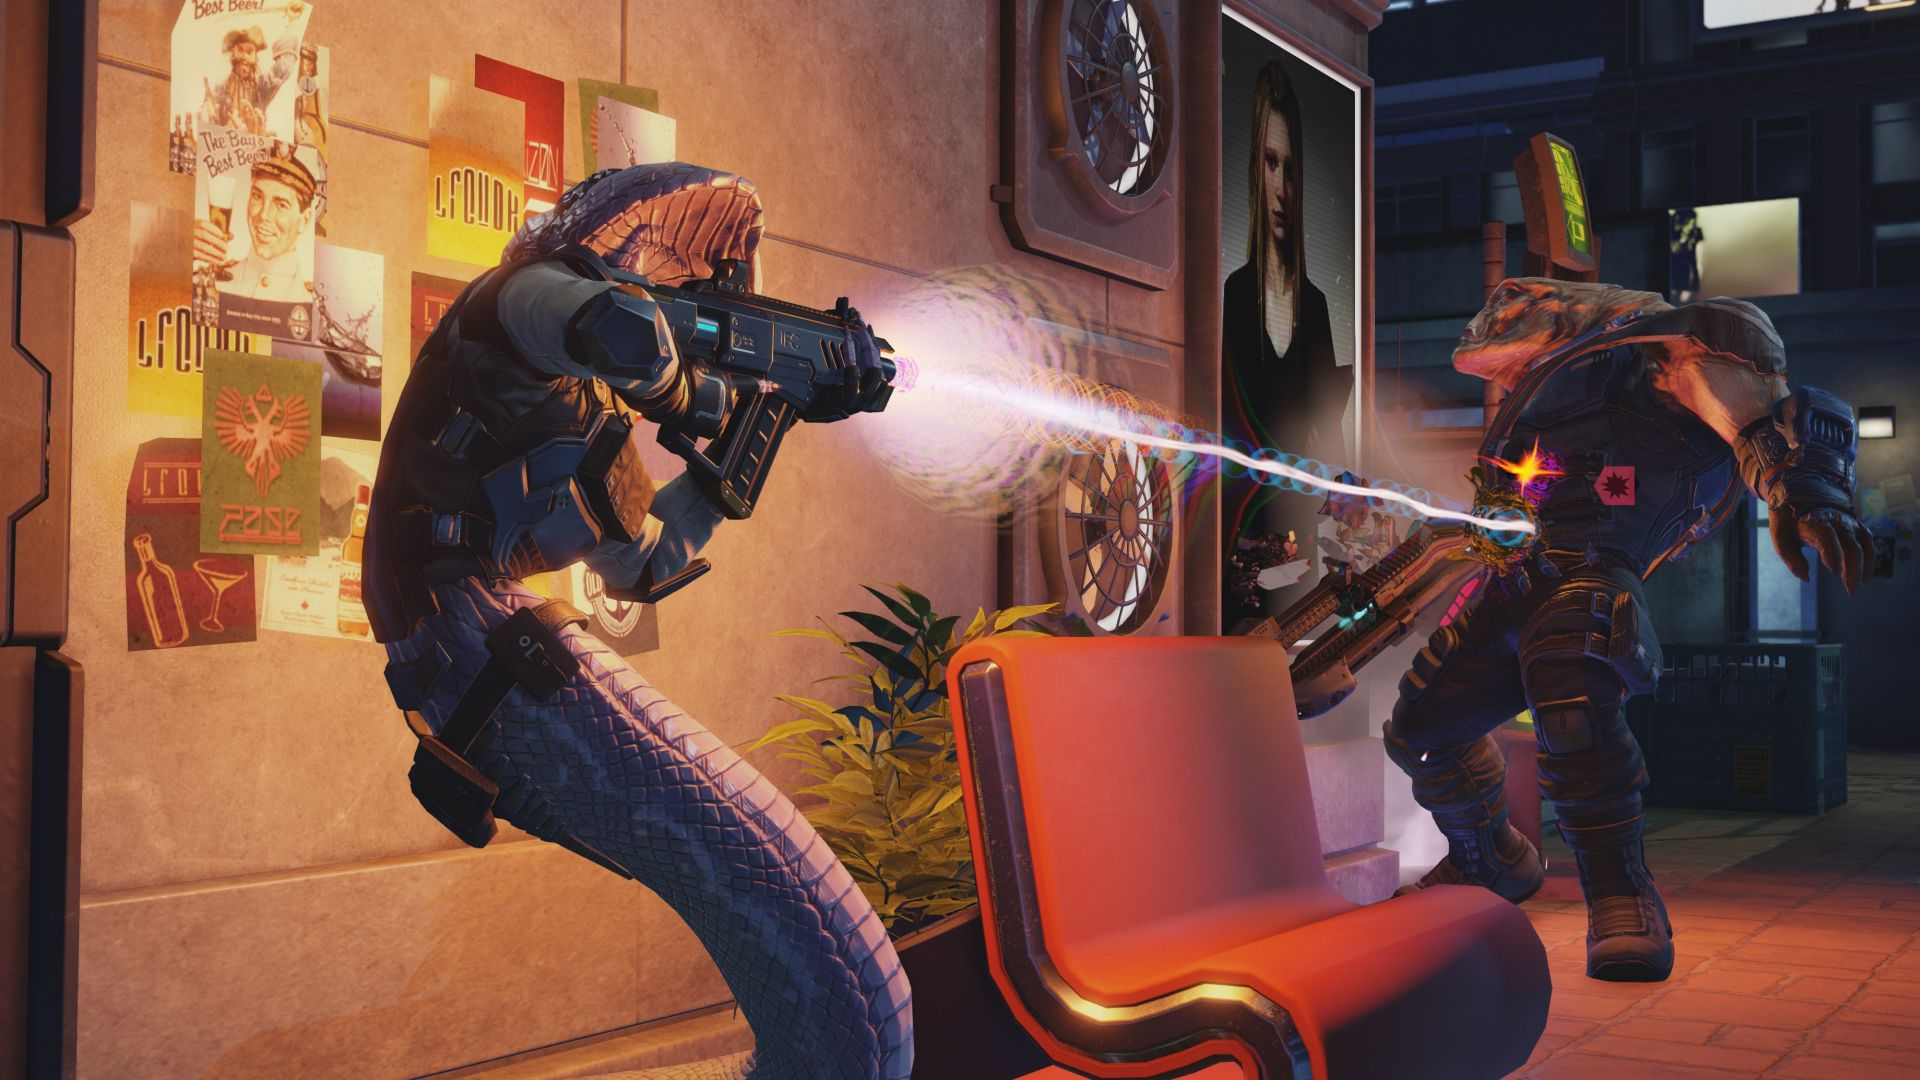 XCOM: Chimera Squad Release Date, Trailer, Gameplay, and News | Den of Geek